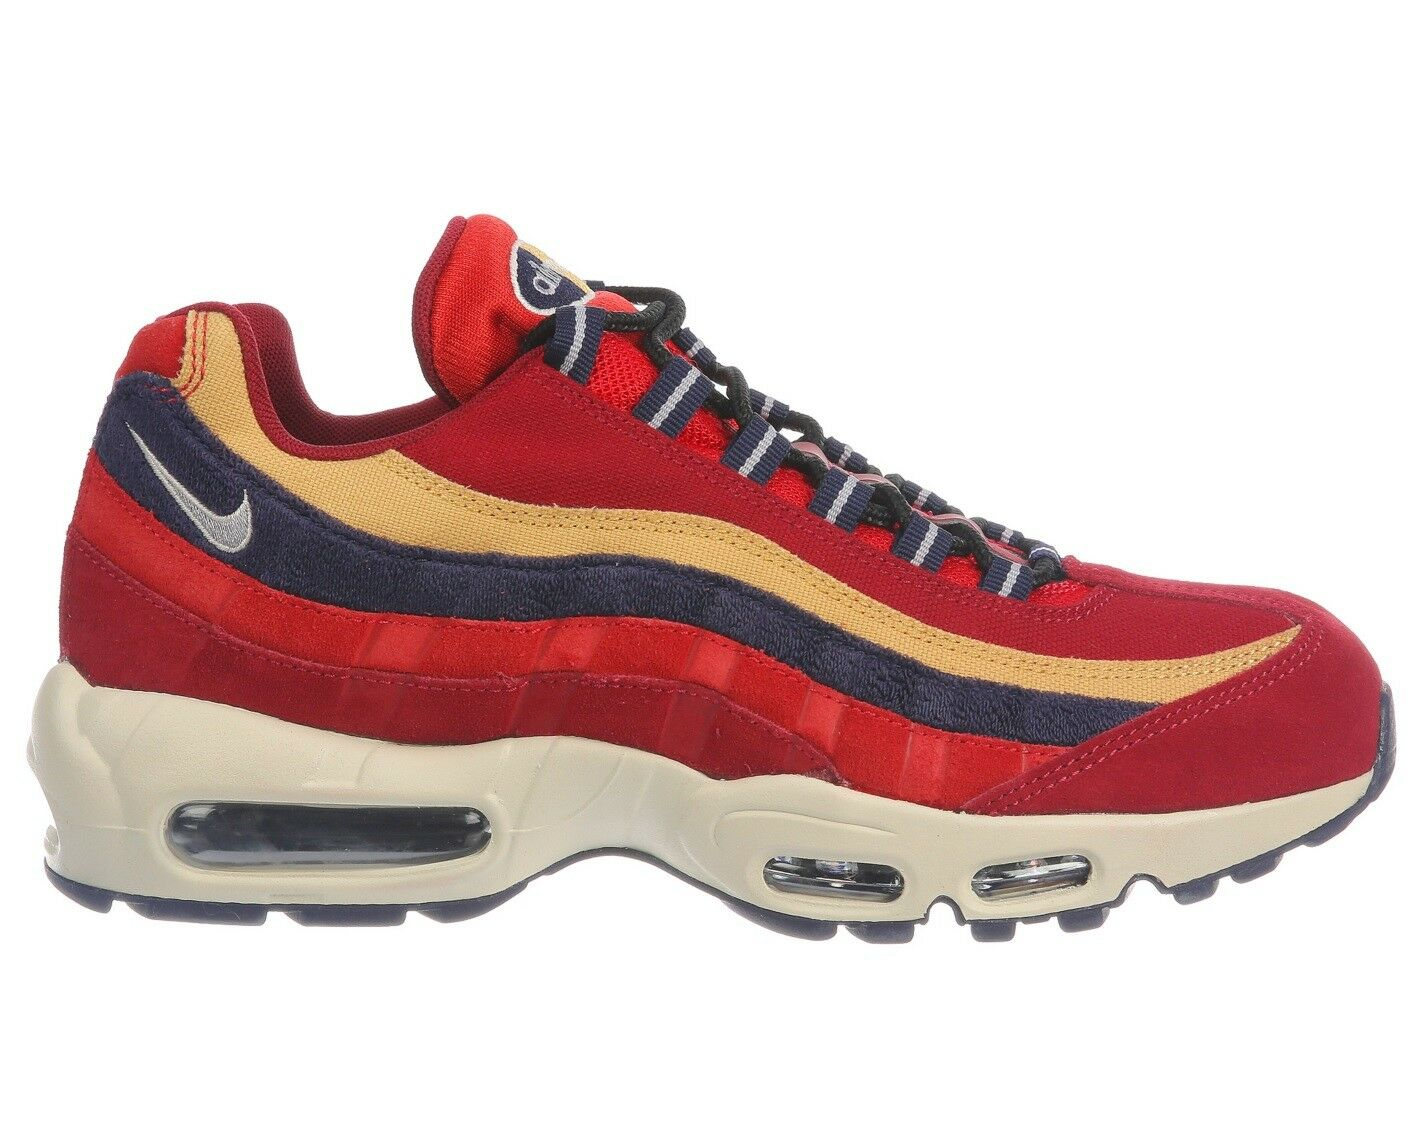 Nike Air Max 95 Premium Mens 538416-603 Red Purple Wheat Running shoes Size 9